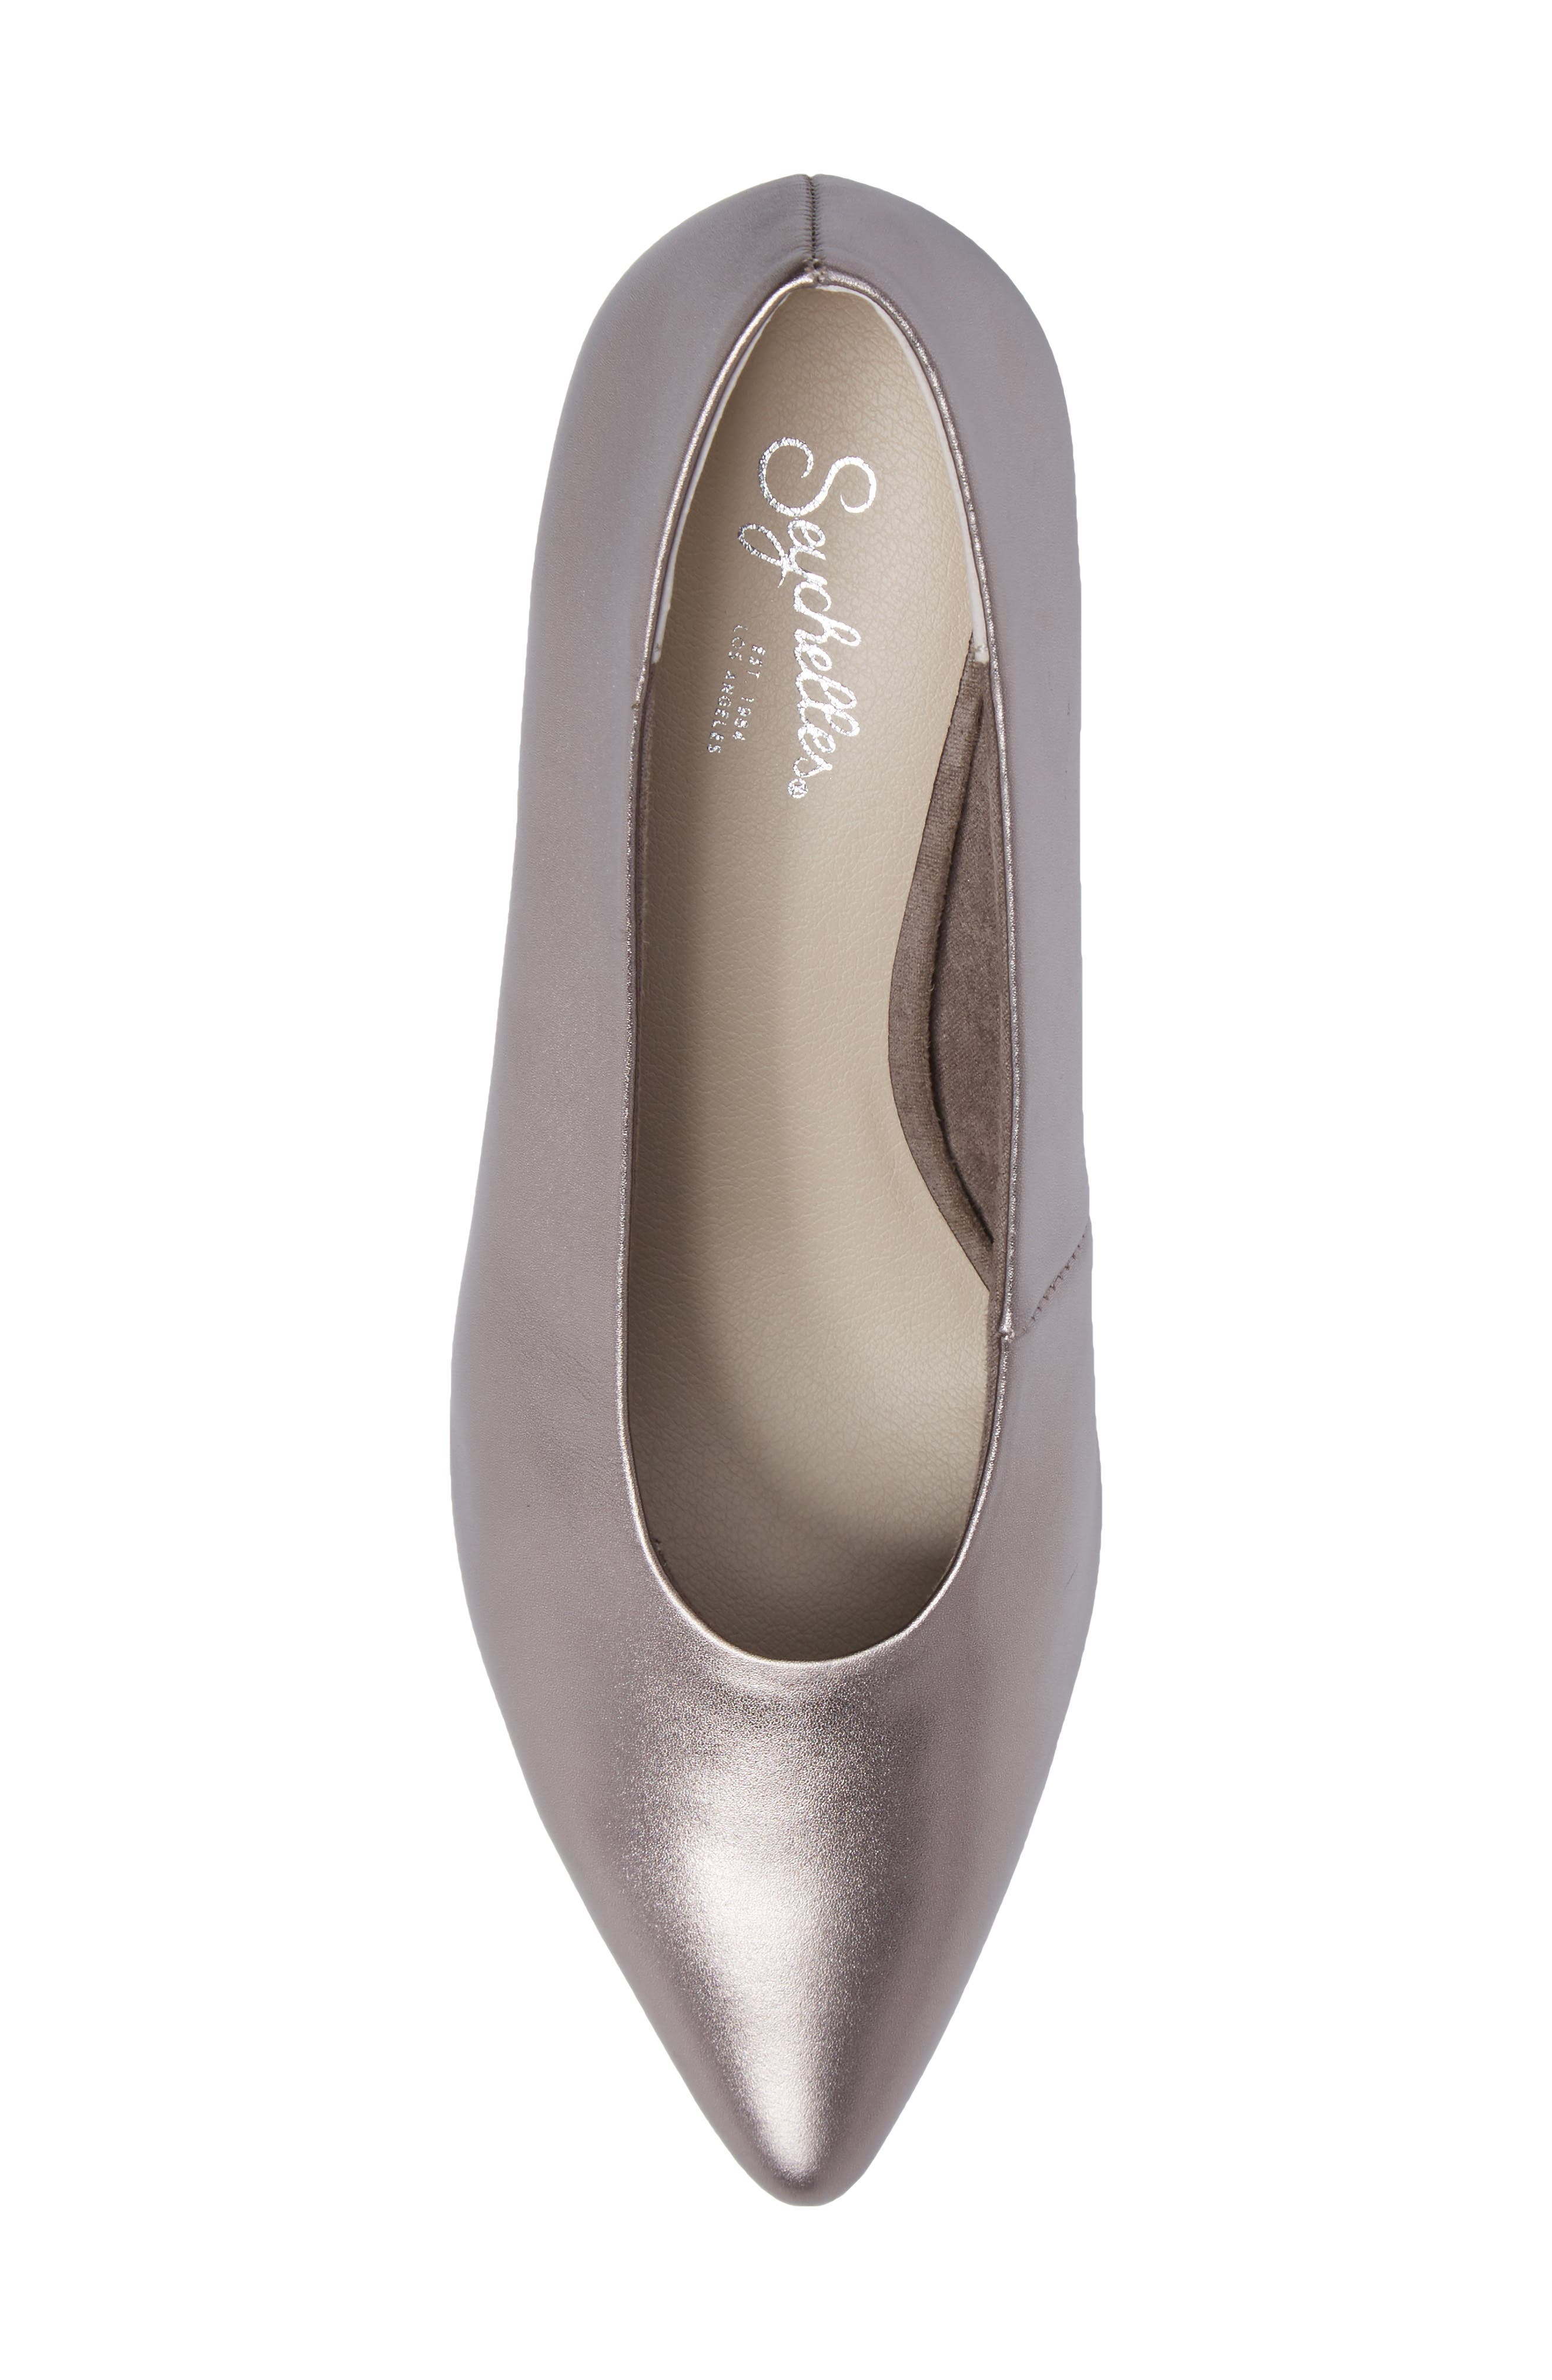 Rehearse Pointy Toe Pump,                             Alternate thumbnail 5, color,                             Pewter Leather